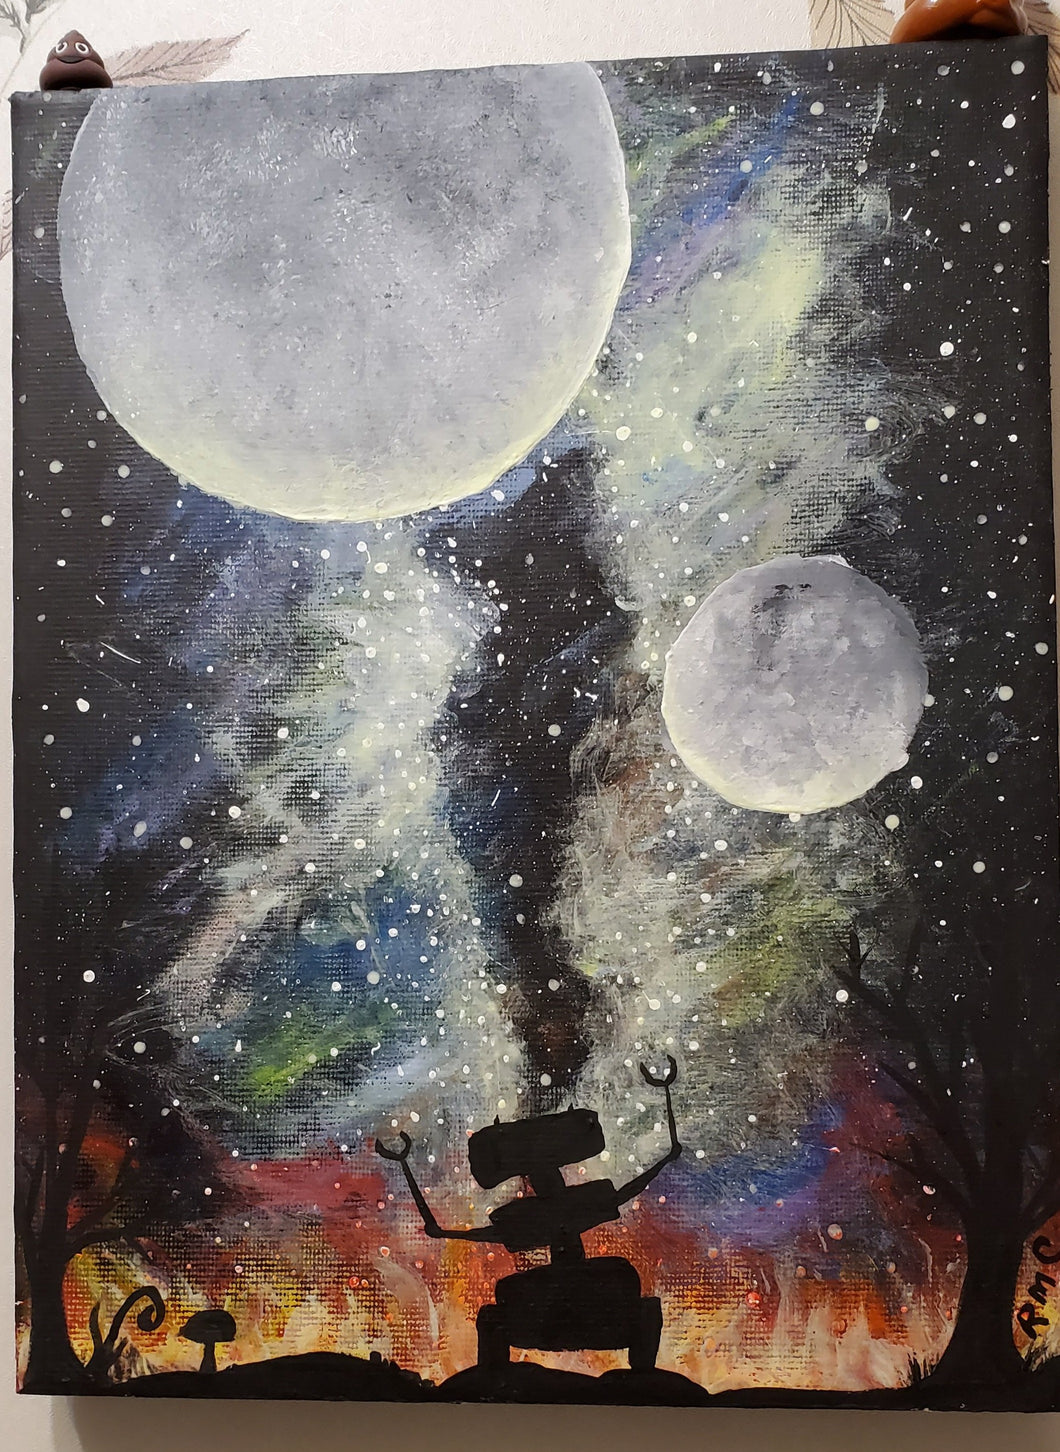 Space and Robot Glow In The Dark Acrylic Painting Dark Whimsical Art Roxanne Crouse